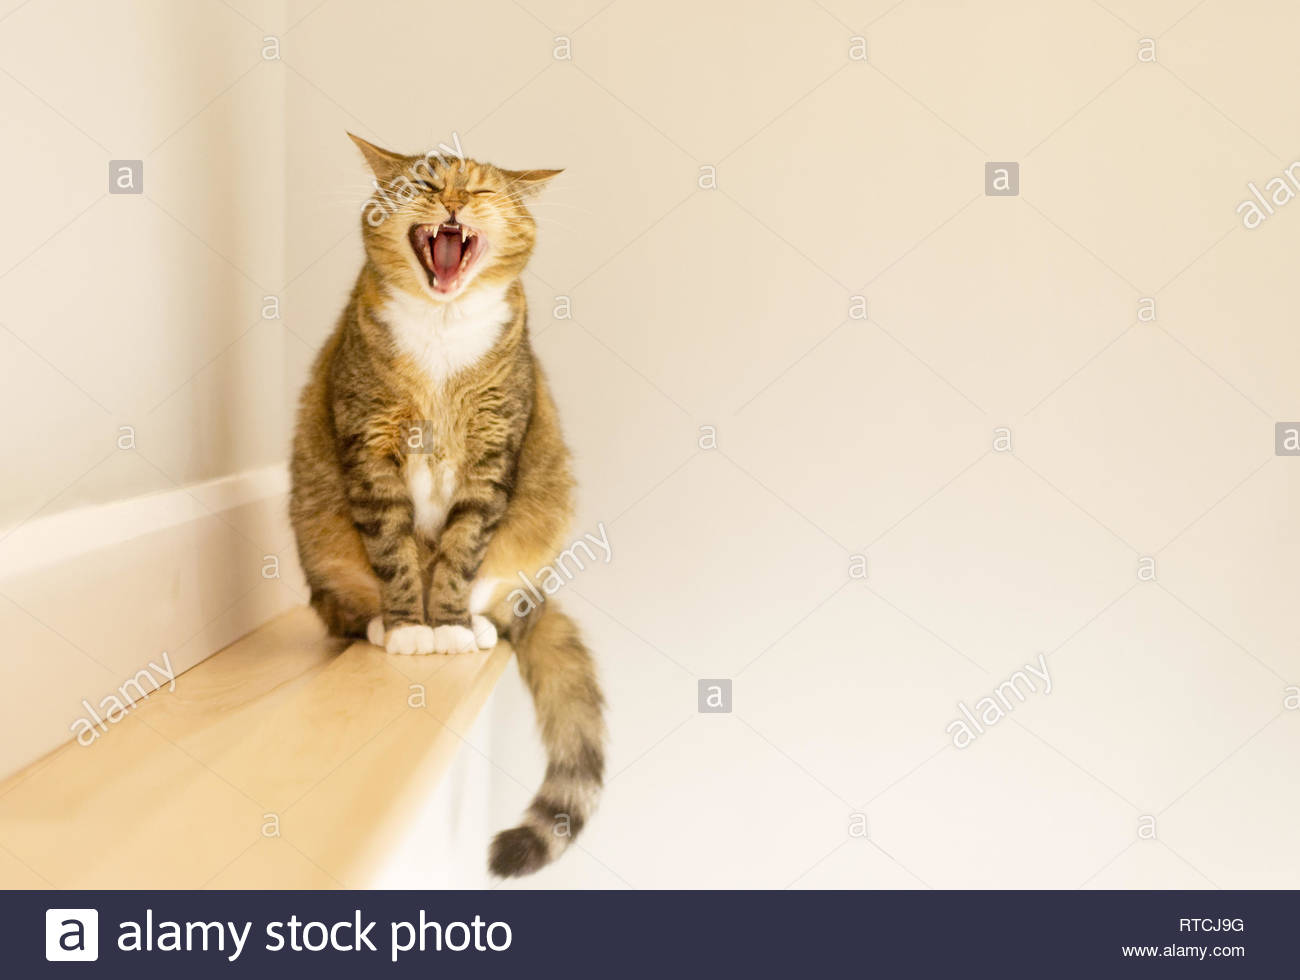 A tabby cat sat on a small shelf yawning - Stock Image